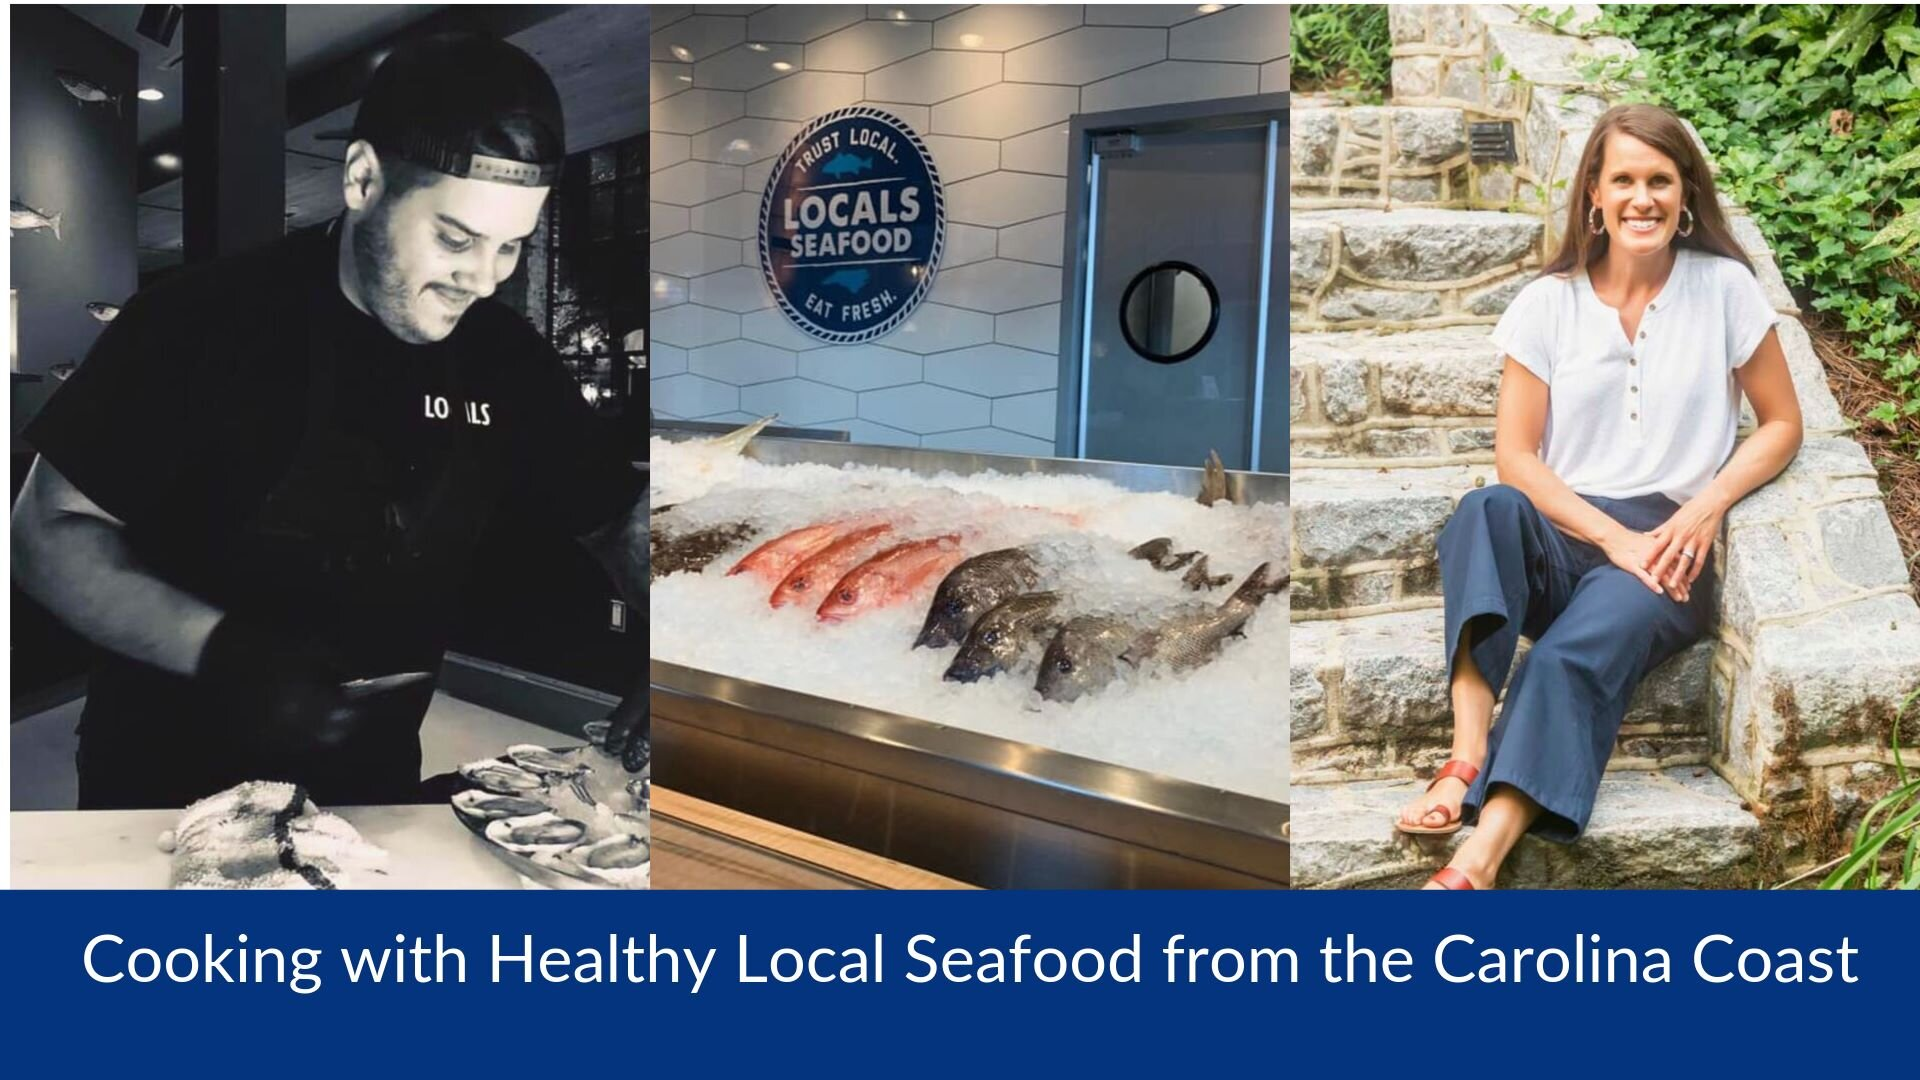 cooking-with-healthy-seafood-event-raleigh.jpg